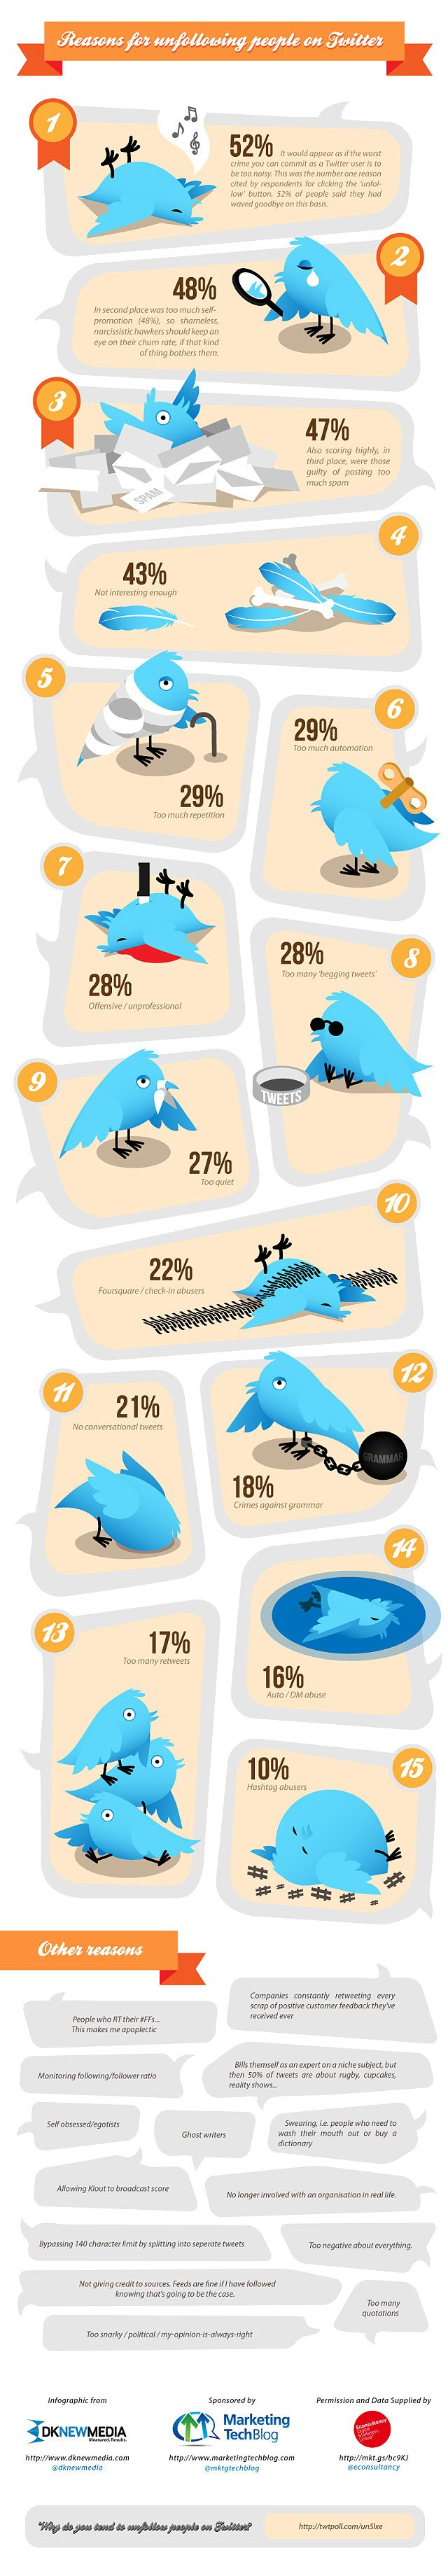 Twitter : Les raisons de l'unfollow